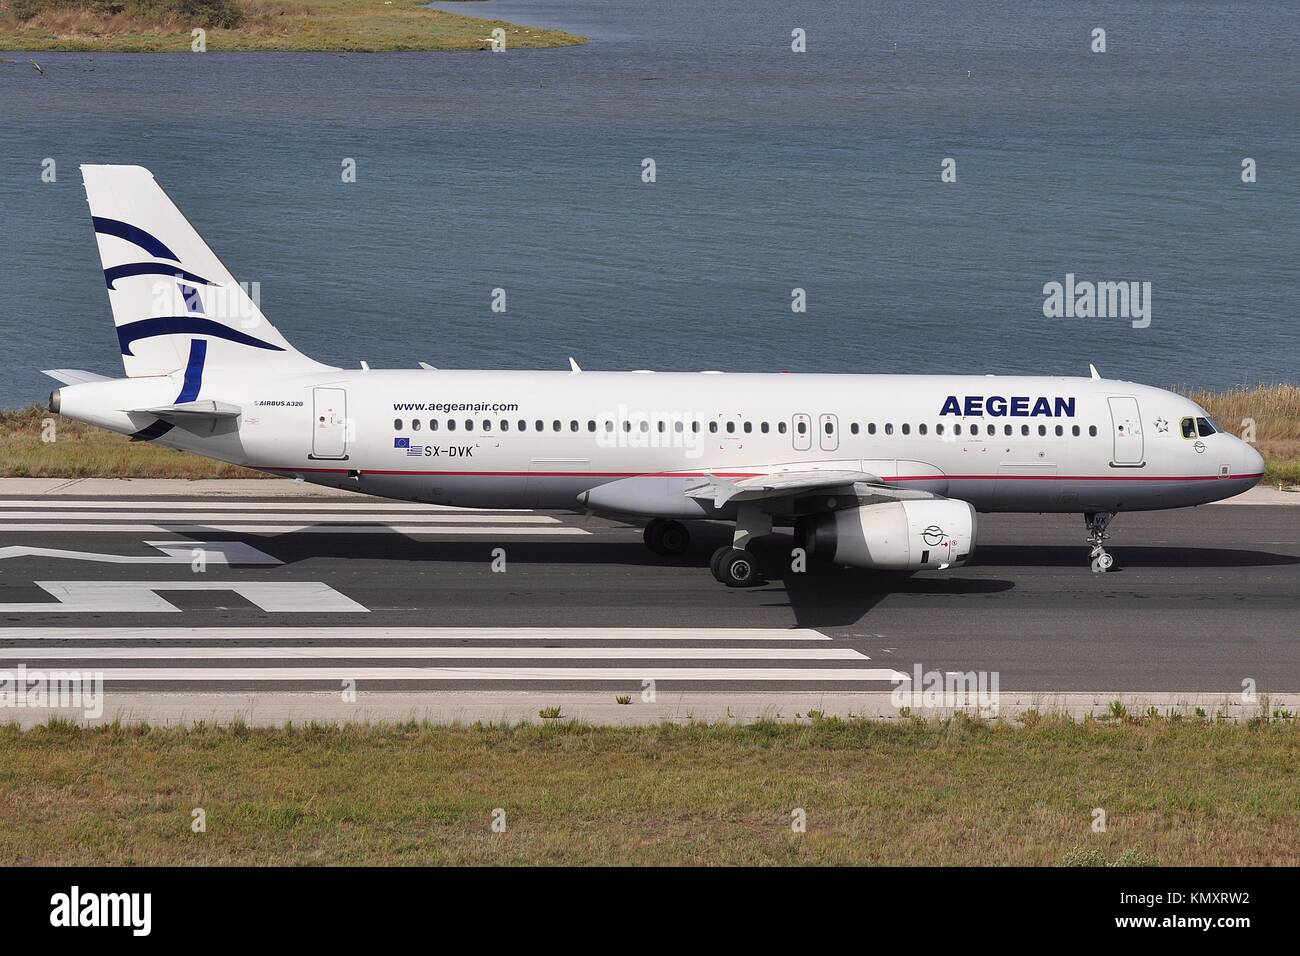 AEGEAN AIRLINES A320-200 SX-DVK - Stock Image